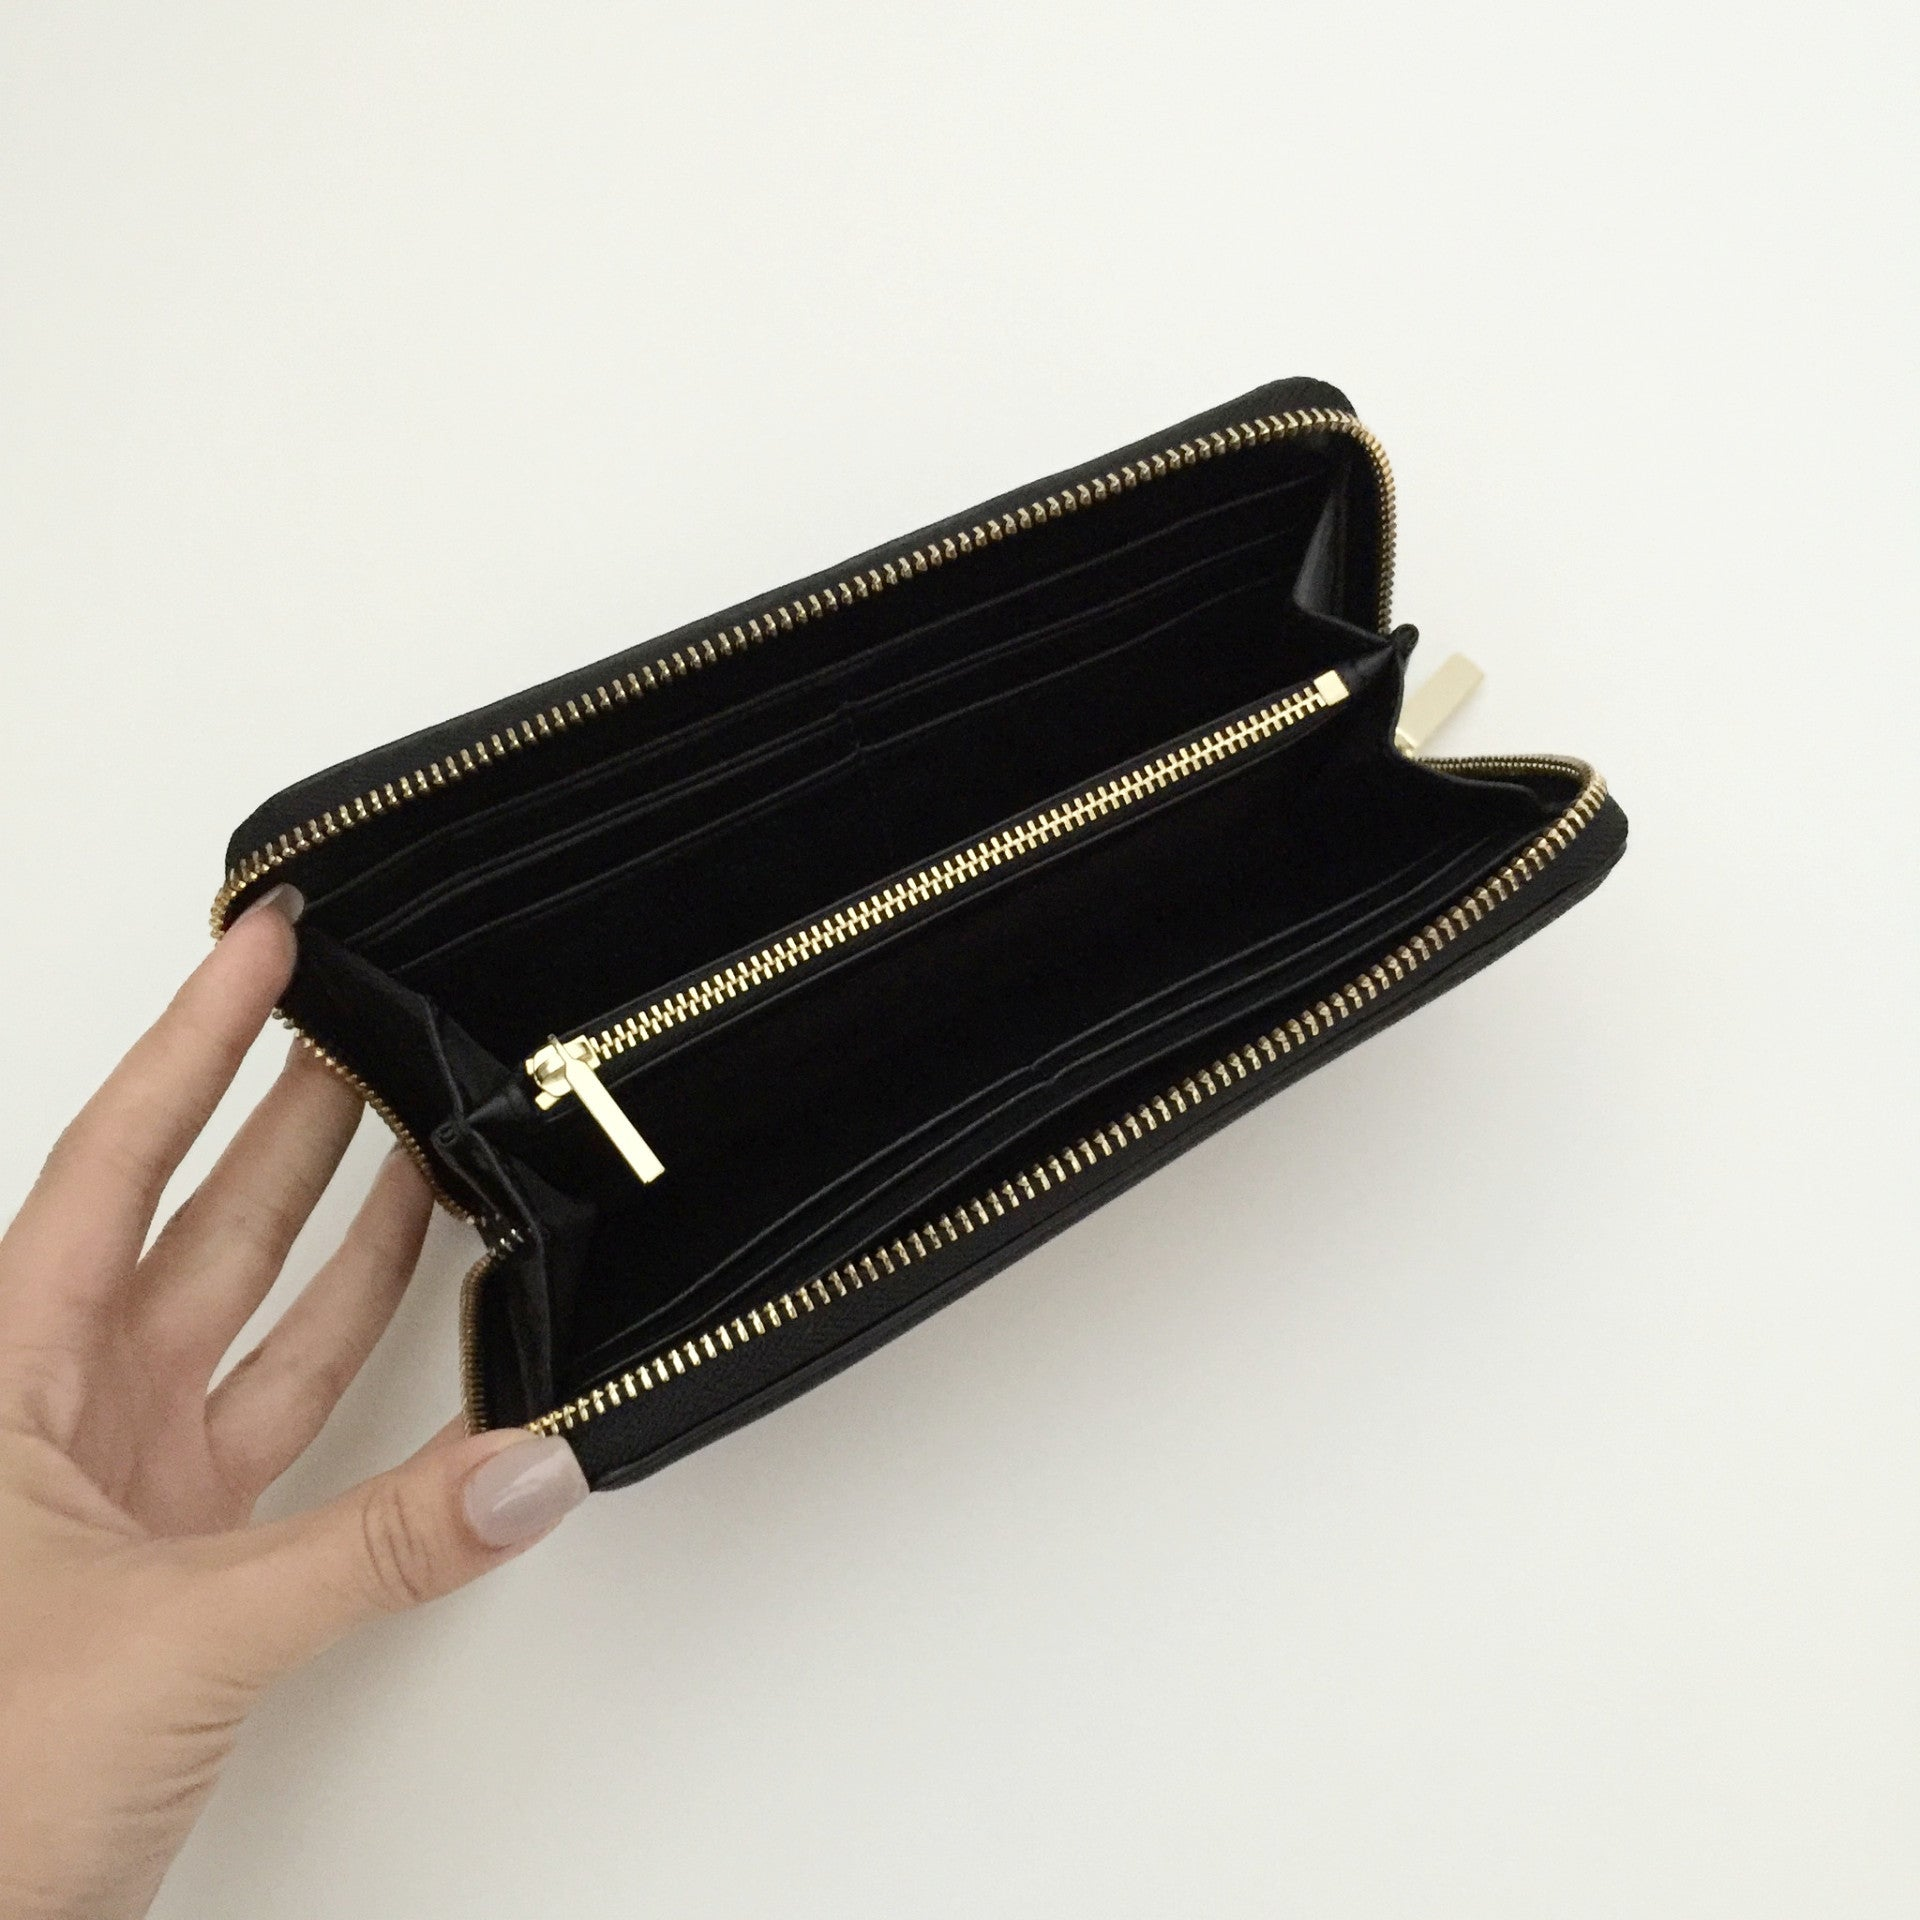 Authentic TORY BURCH Black Leather Wallet